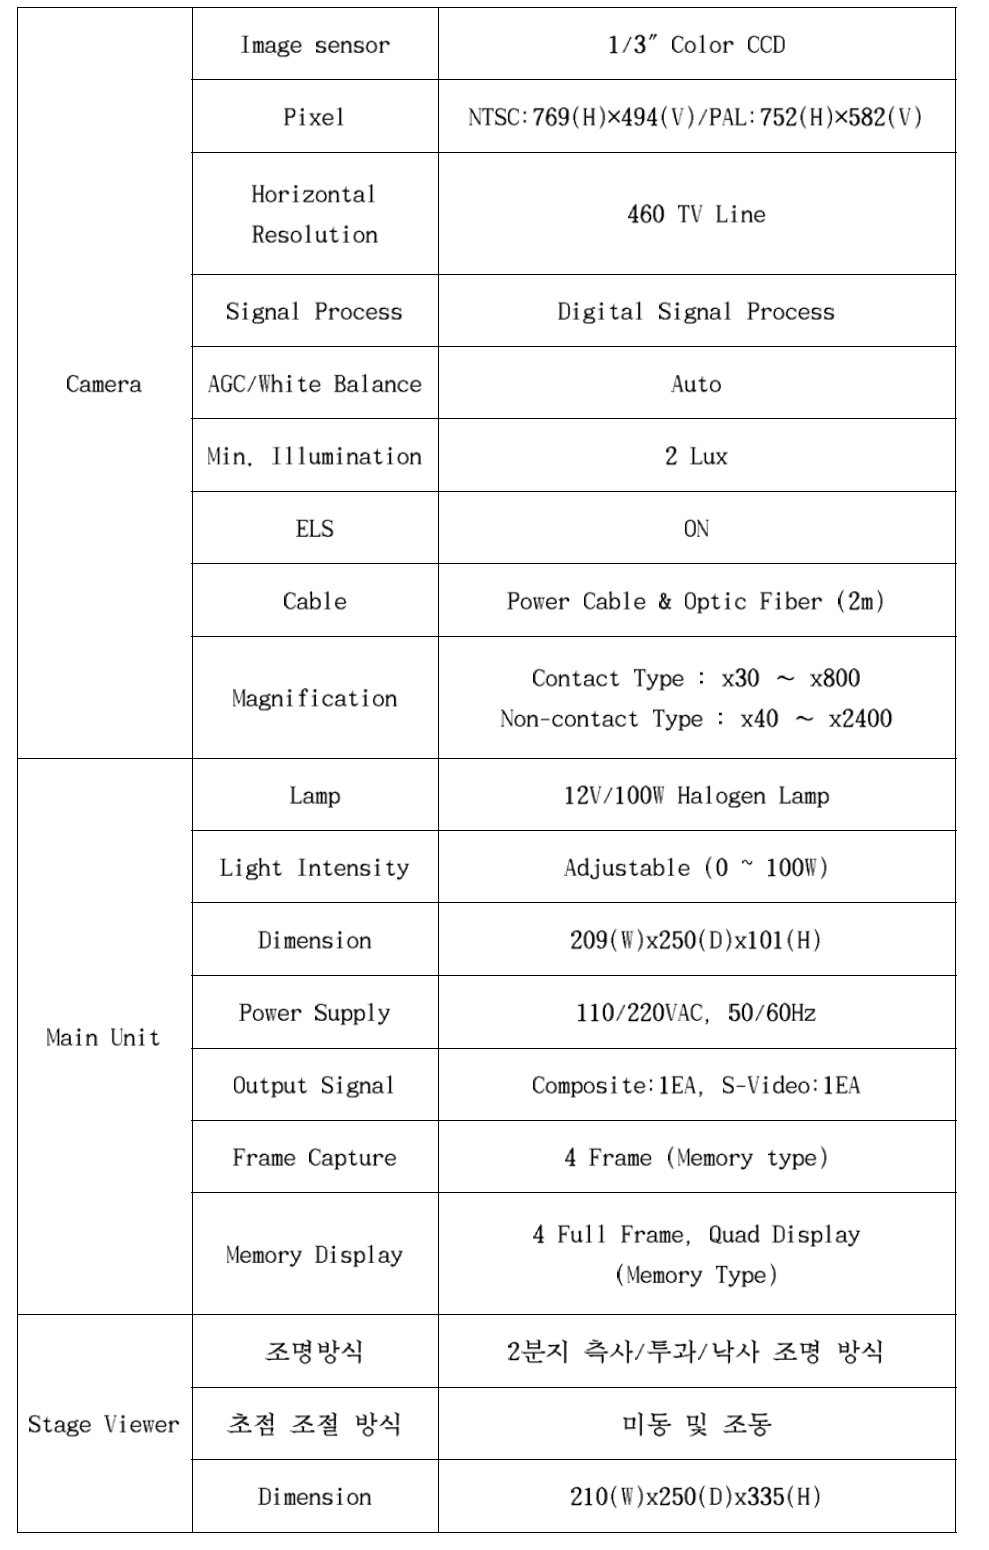 Specification of iCamscope-305B(Co-axial type)